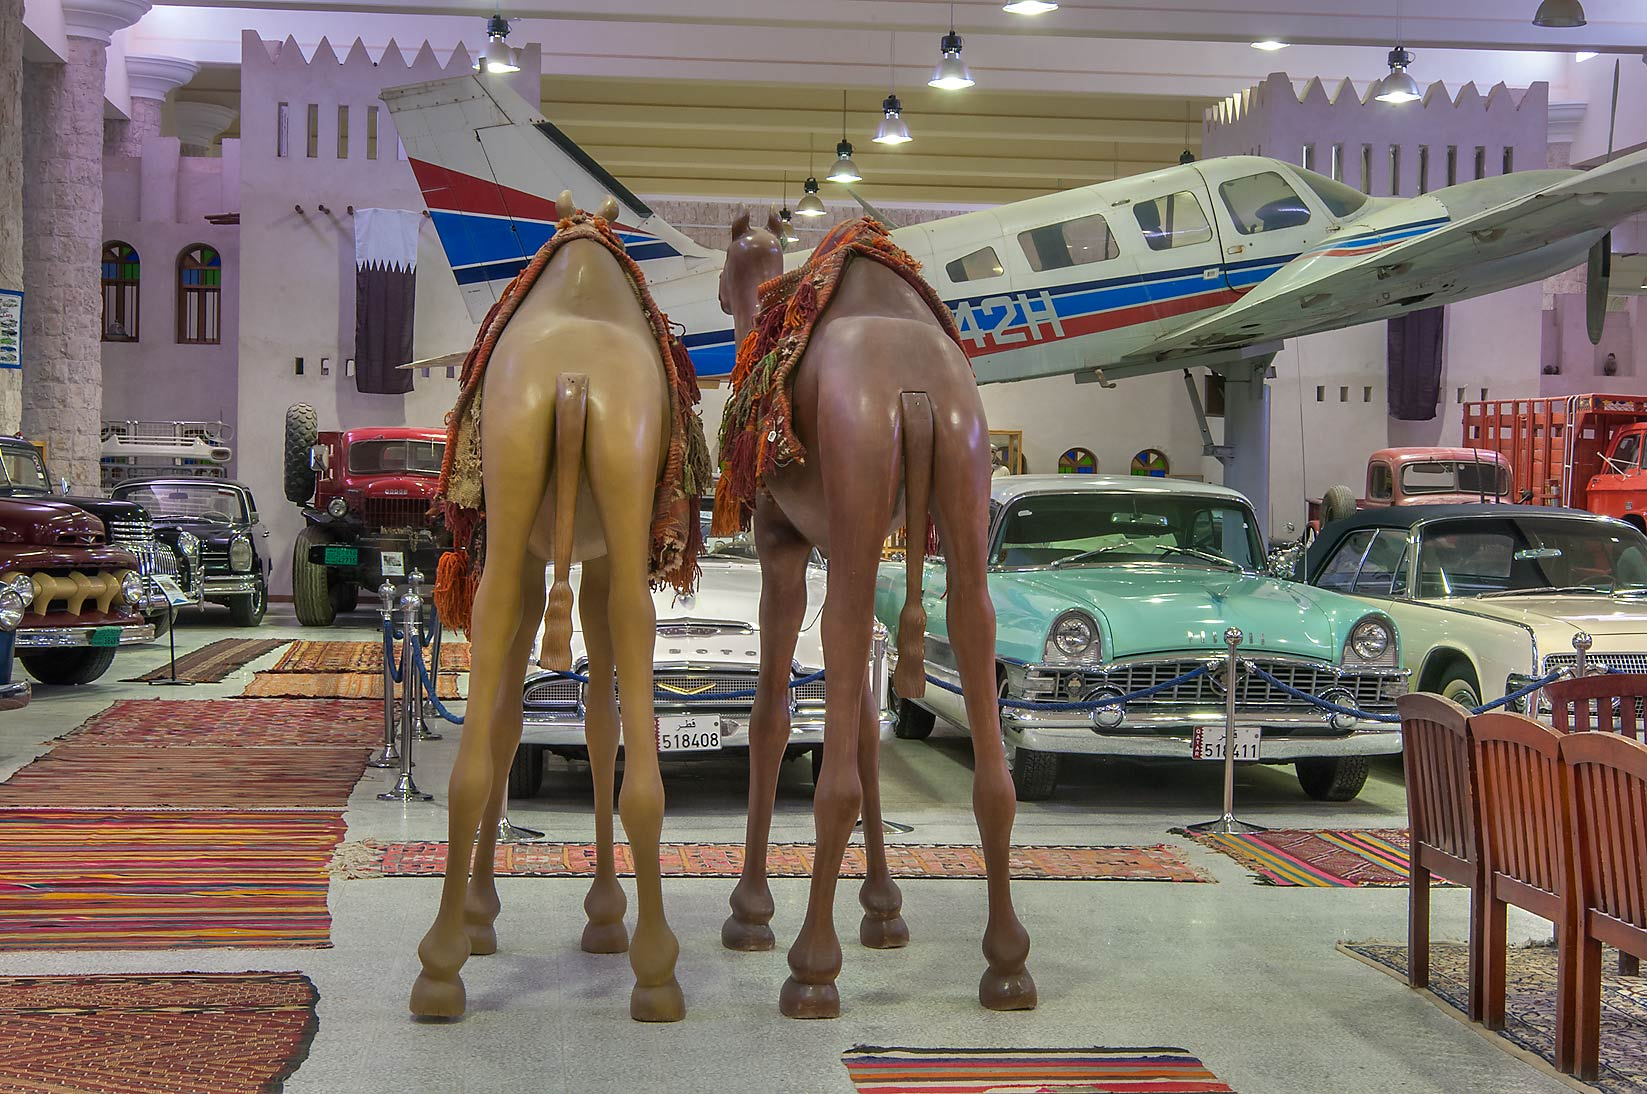 Eclectic collection of transportation vehicles in...Museum near Al-Shahaniya. Doha, Qatar